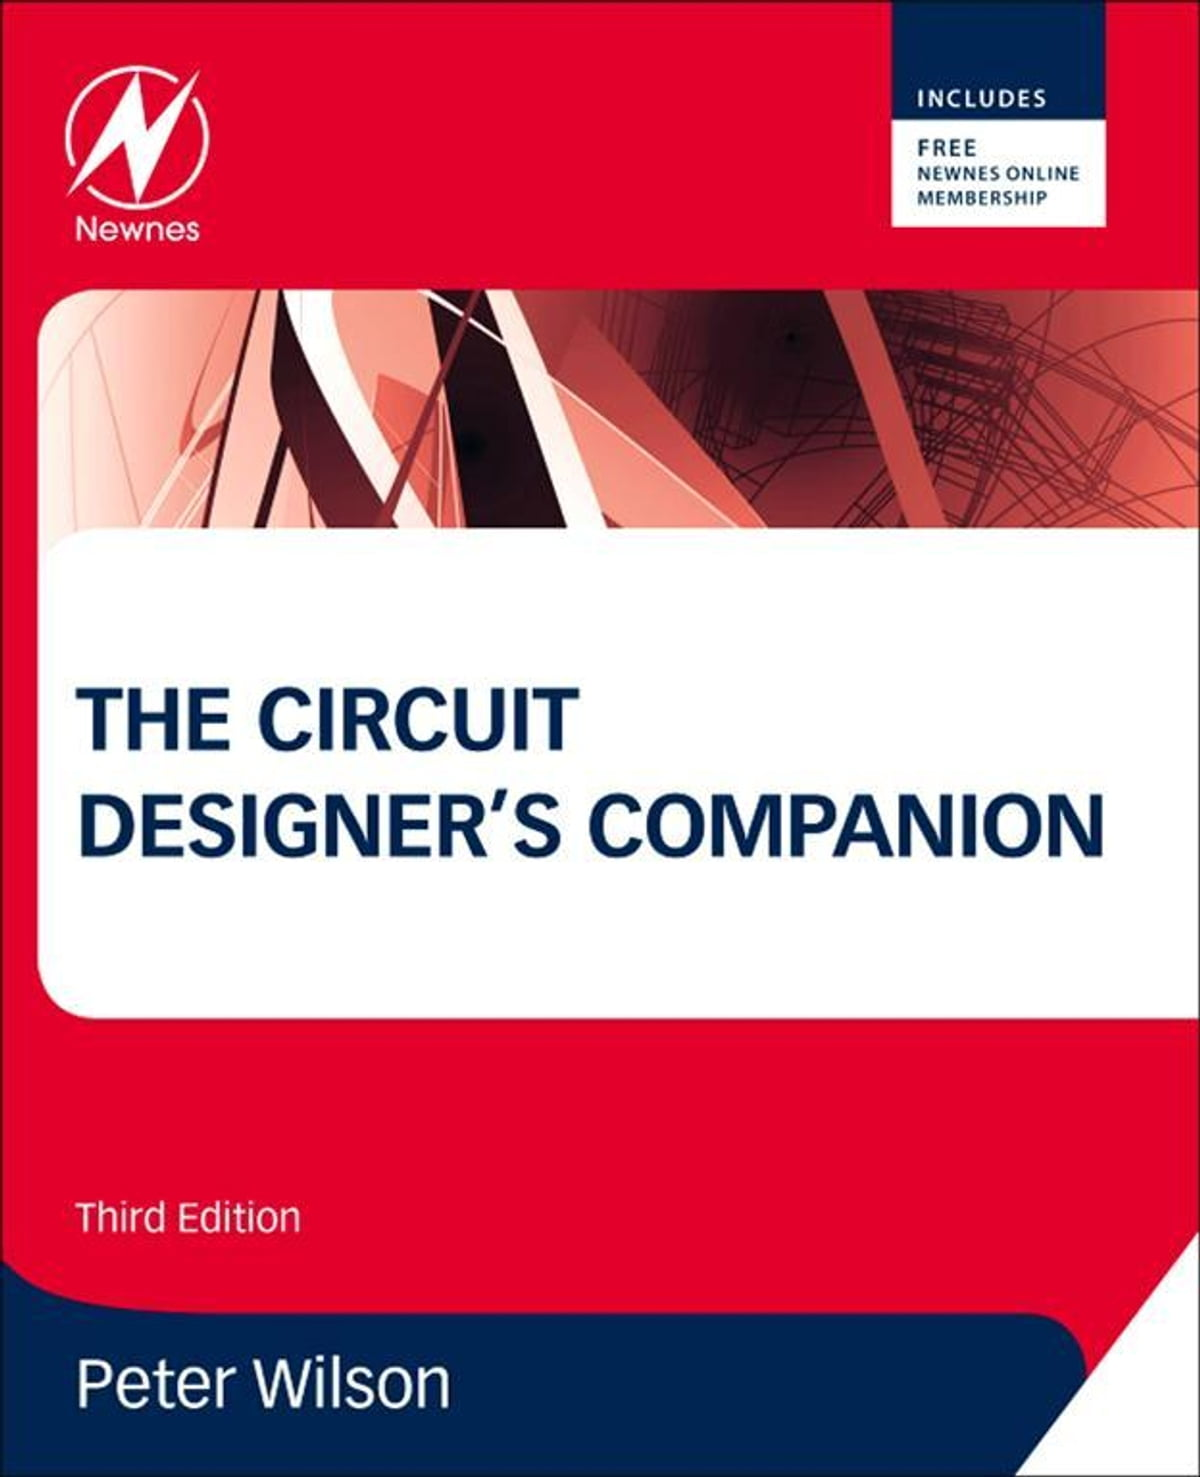 The Circuit Designers Companion Ebook By Peter Wilson This Is A Great Online Creator 9780080971476 Rakuten Kobo